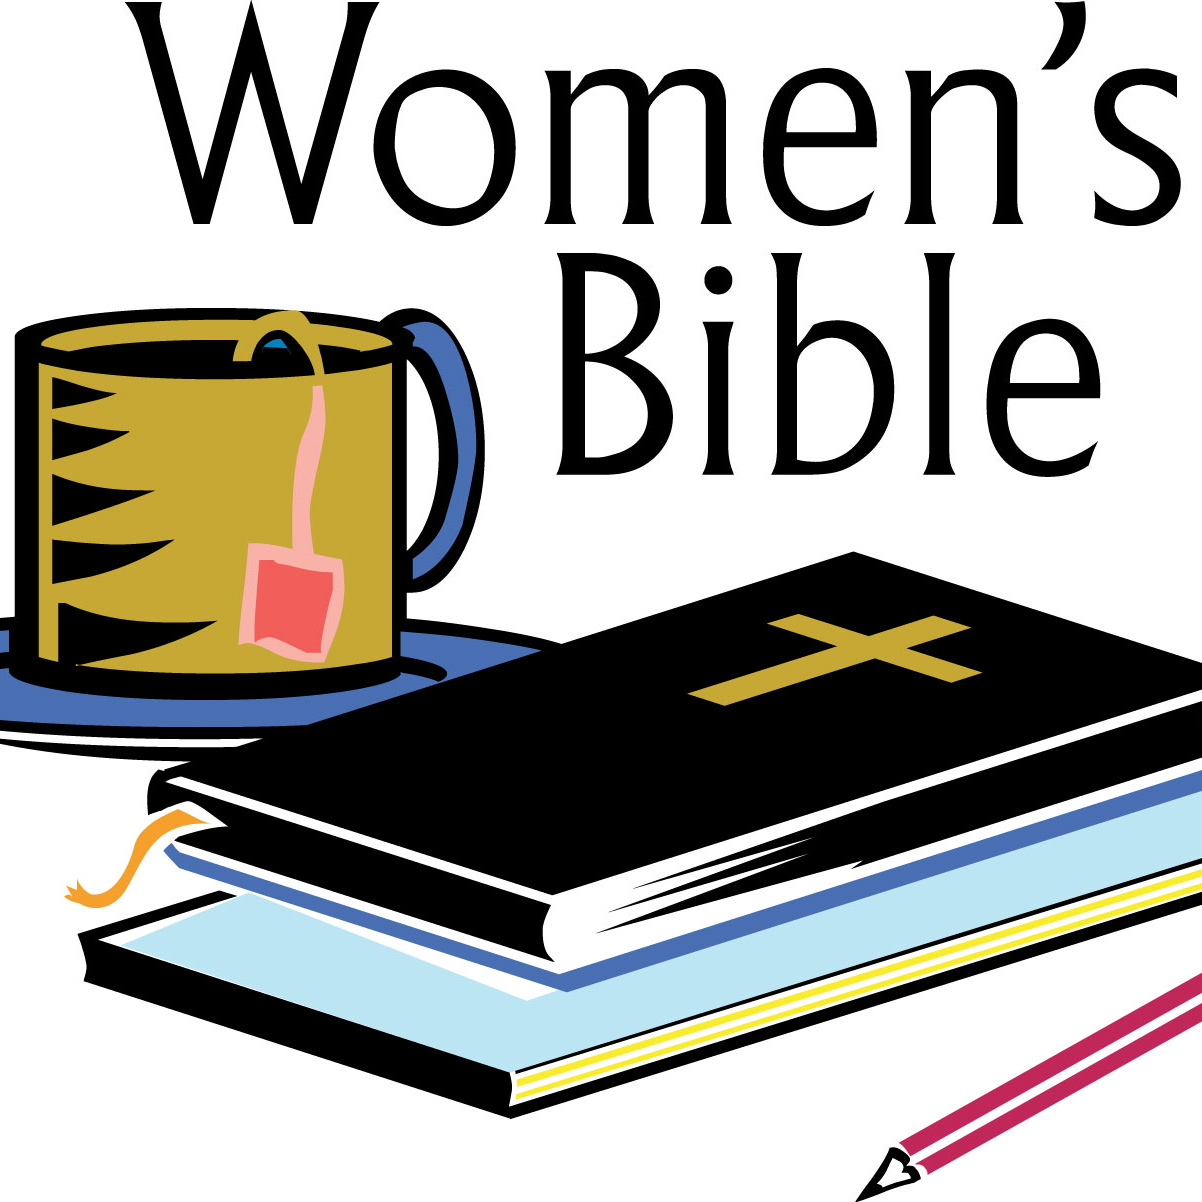 Womens Bible Study Clipart #1-Womens Bible Study Clipart #1-18